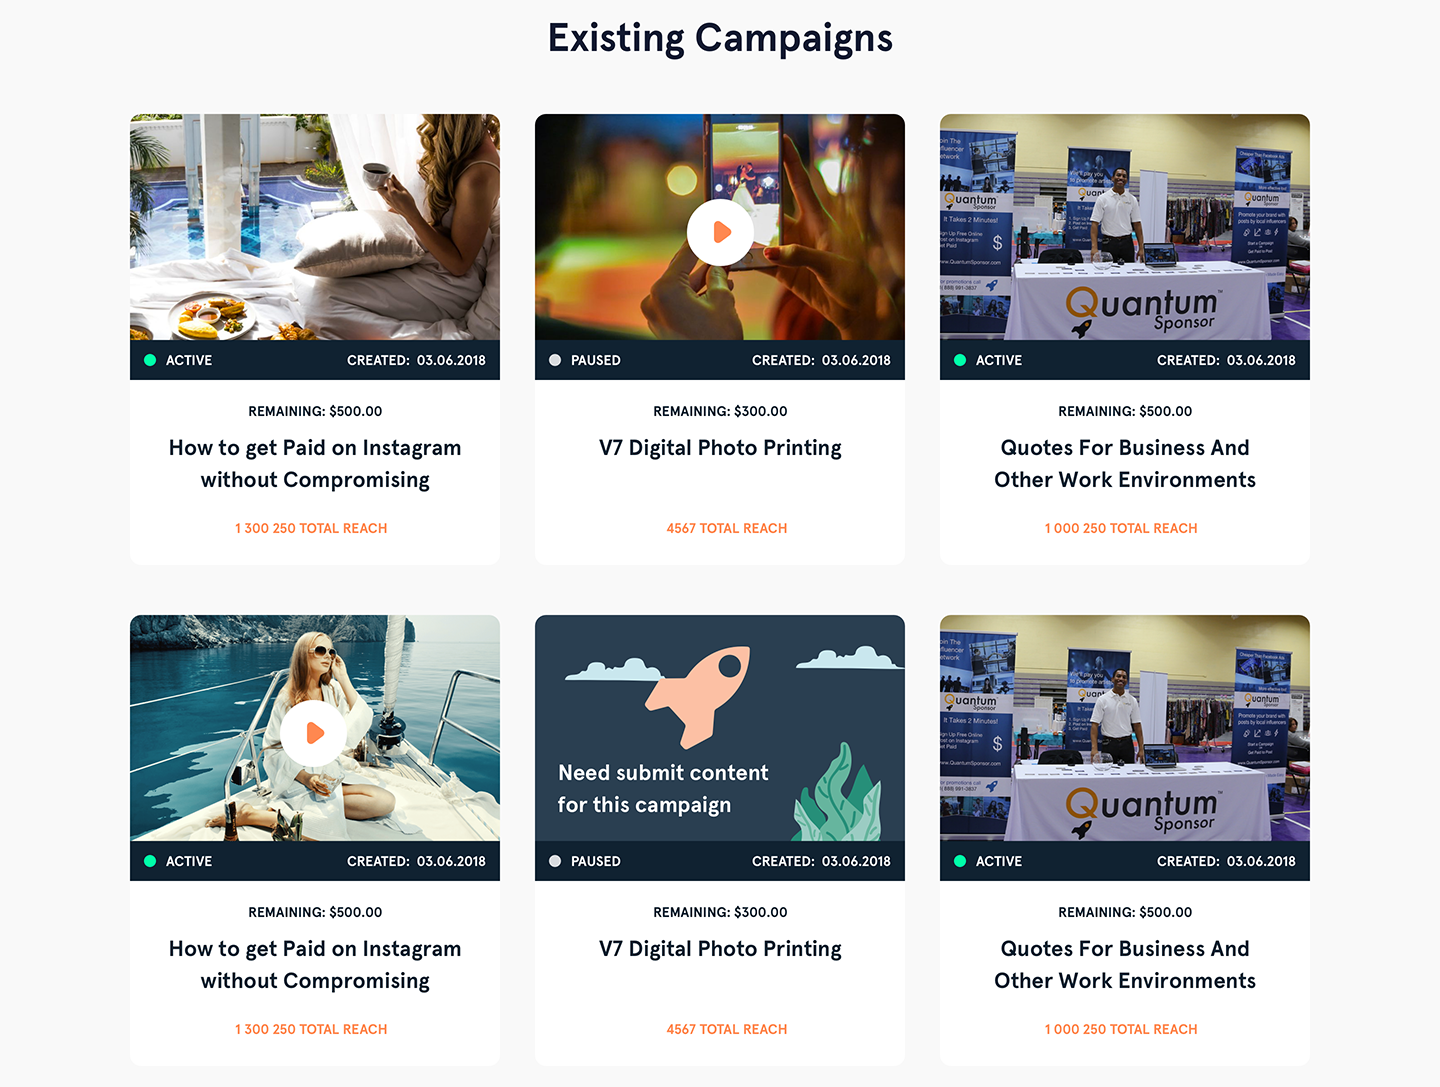 UX design for existing campaigns